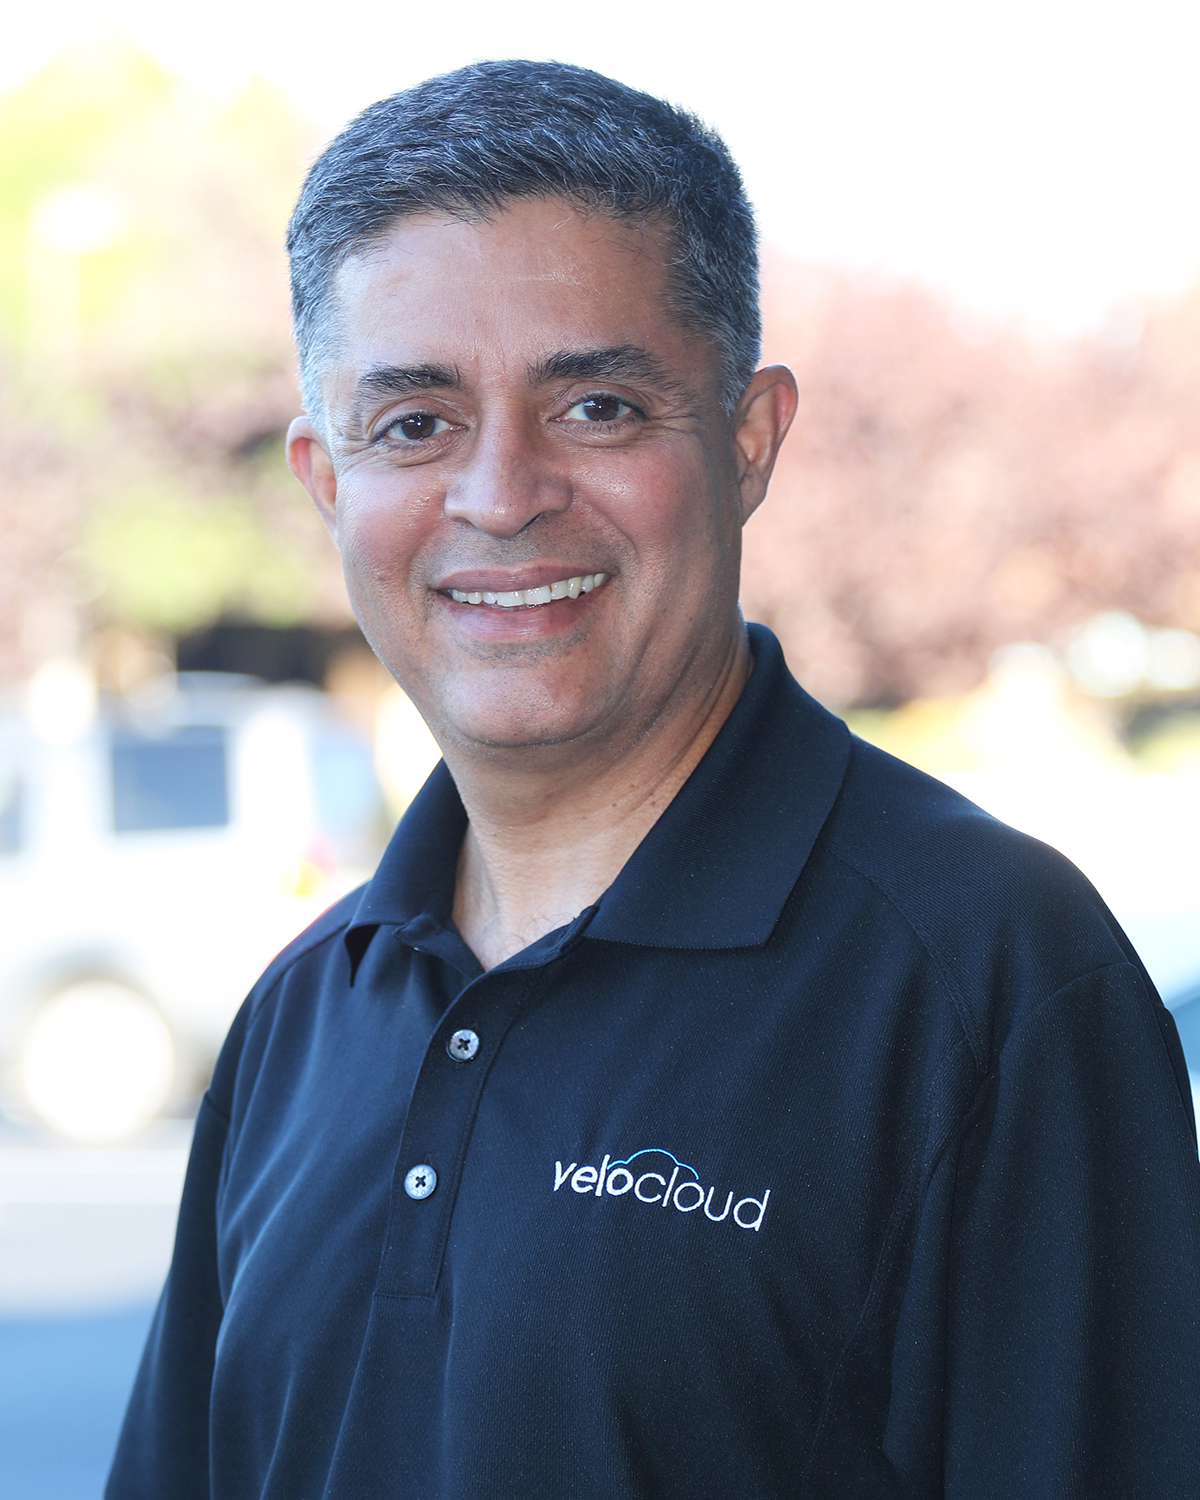 VeloCloud, led by Co-founder and CEO Sanjay Uppal, learned its Cloud-Delivered SD-WAN solution has been named the 2016 SDN Technology of the Year by MEF. (Photo: Business Wire)